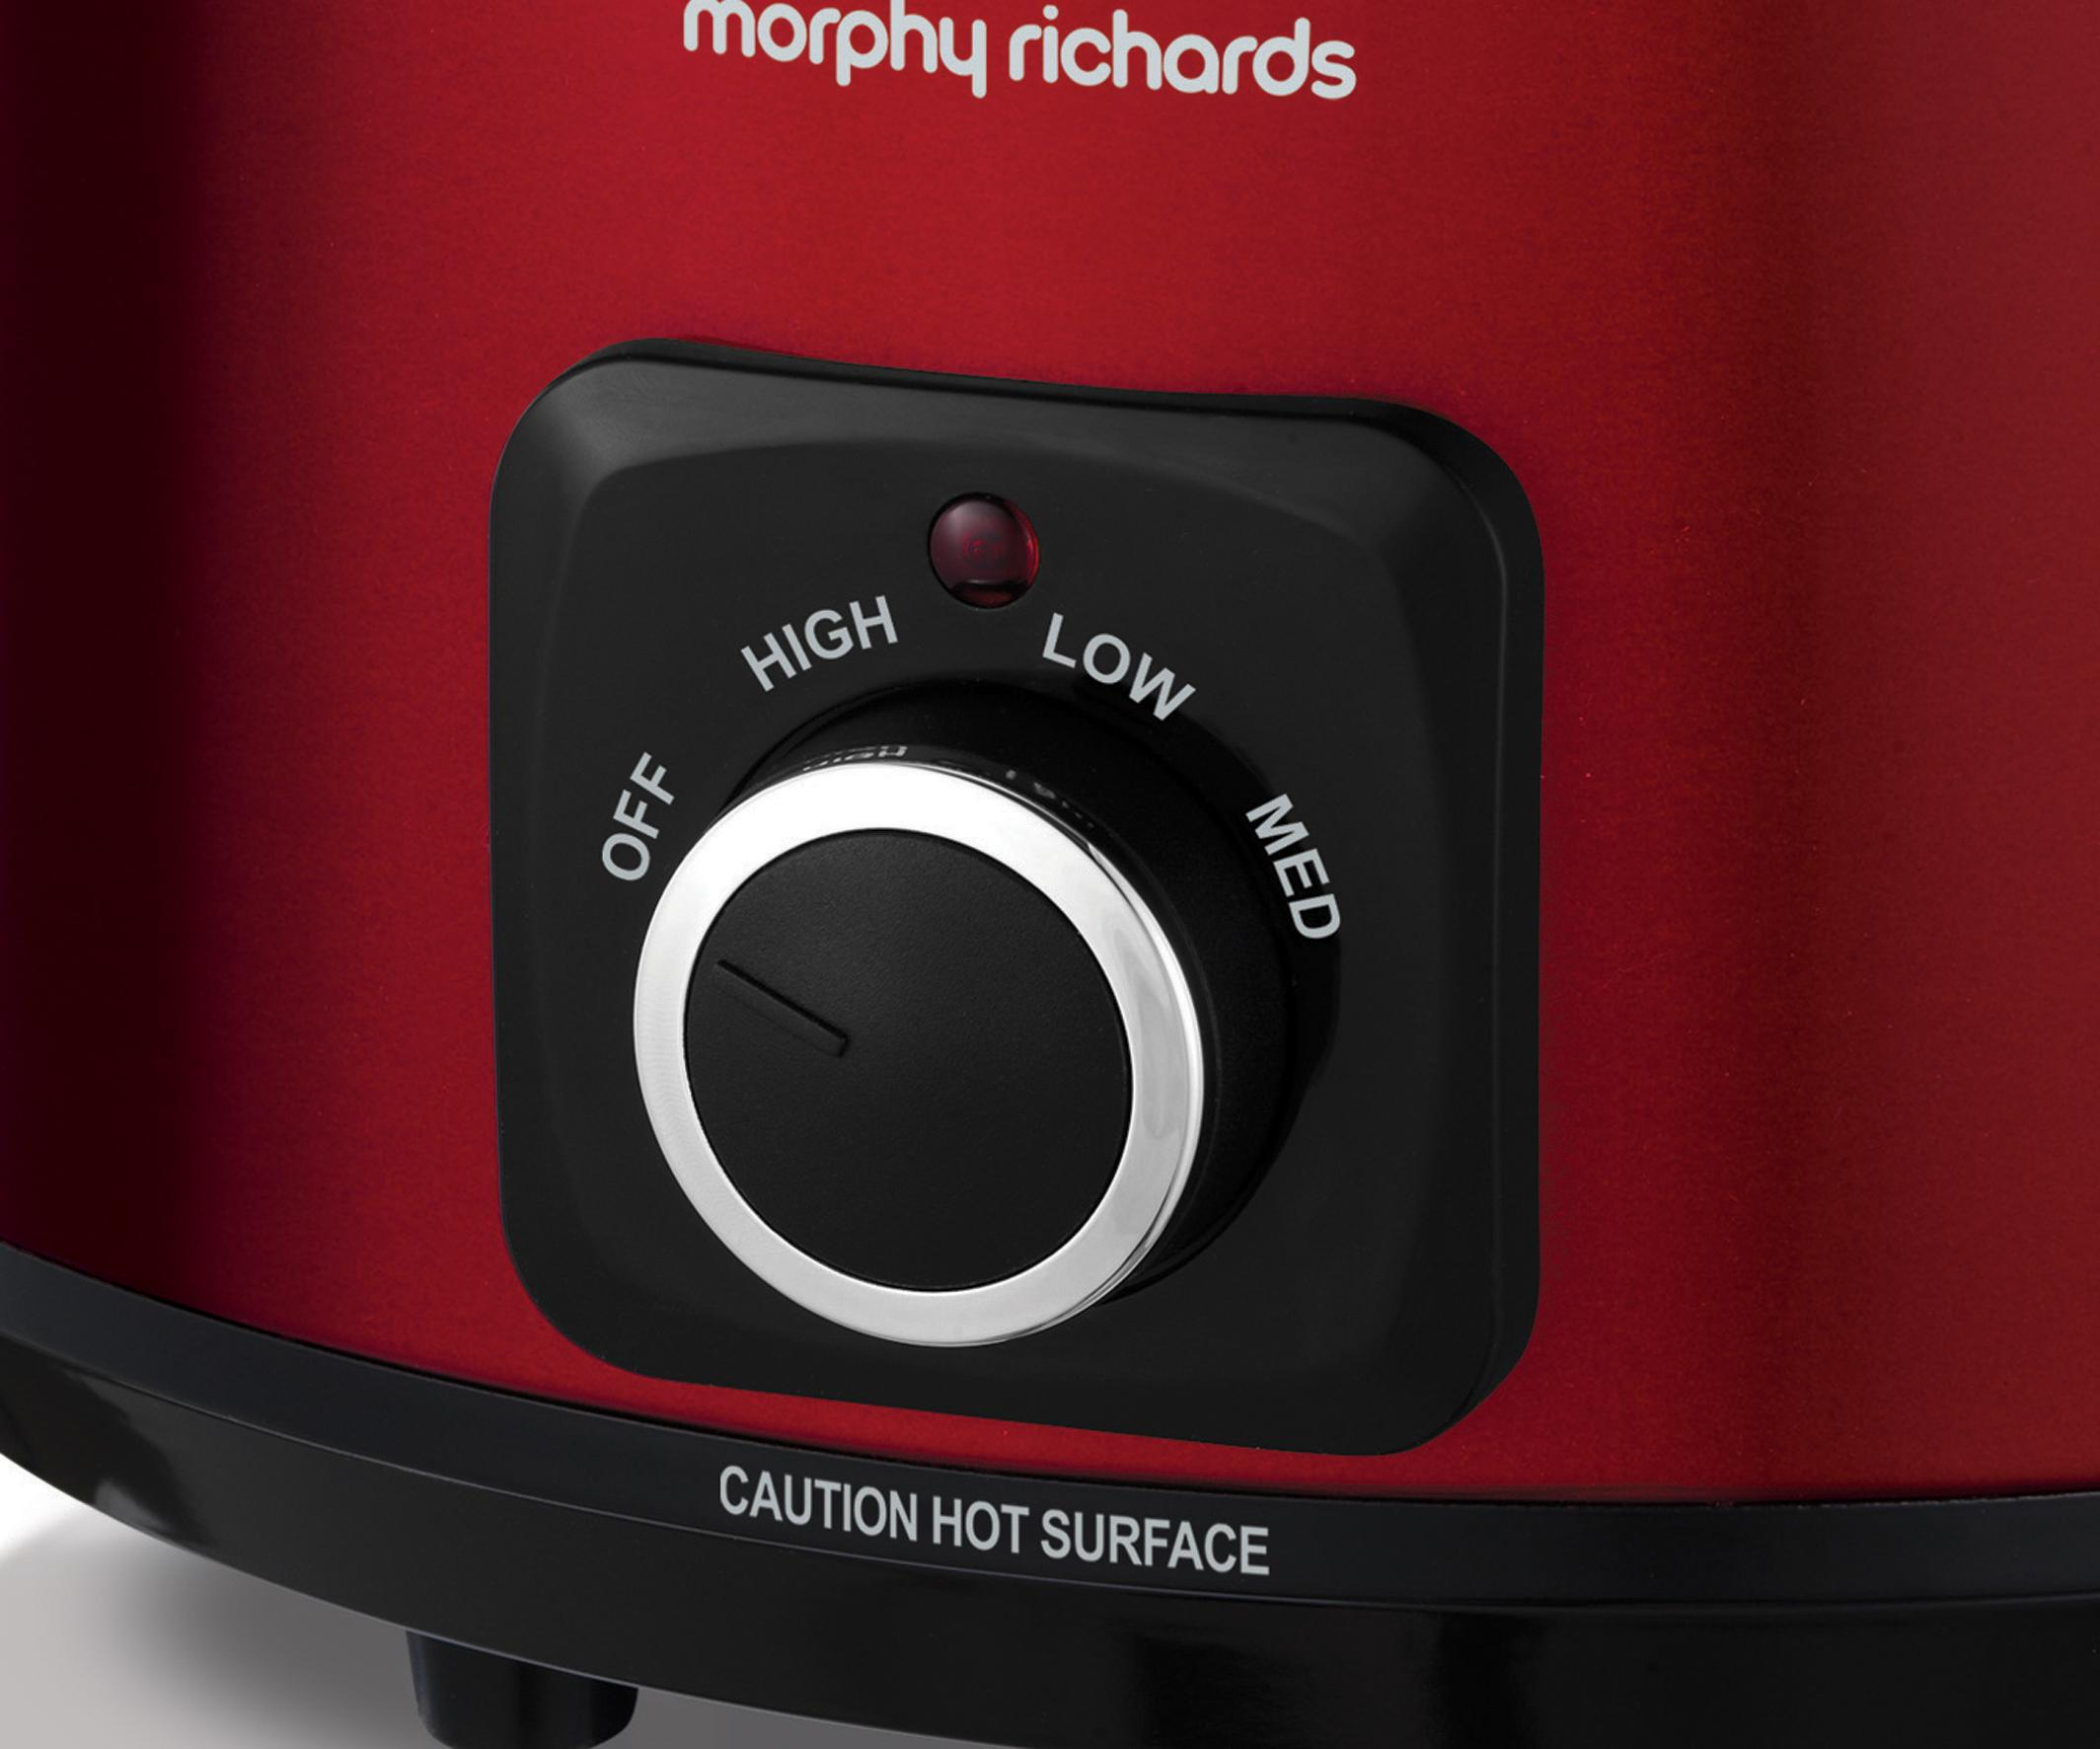 Morphy Richards Sear and Stew Slow Cooker 6.5L 461011 Red Slowcooker